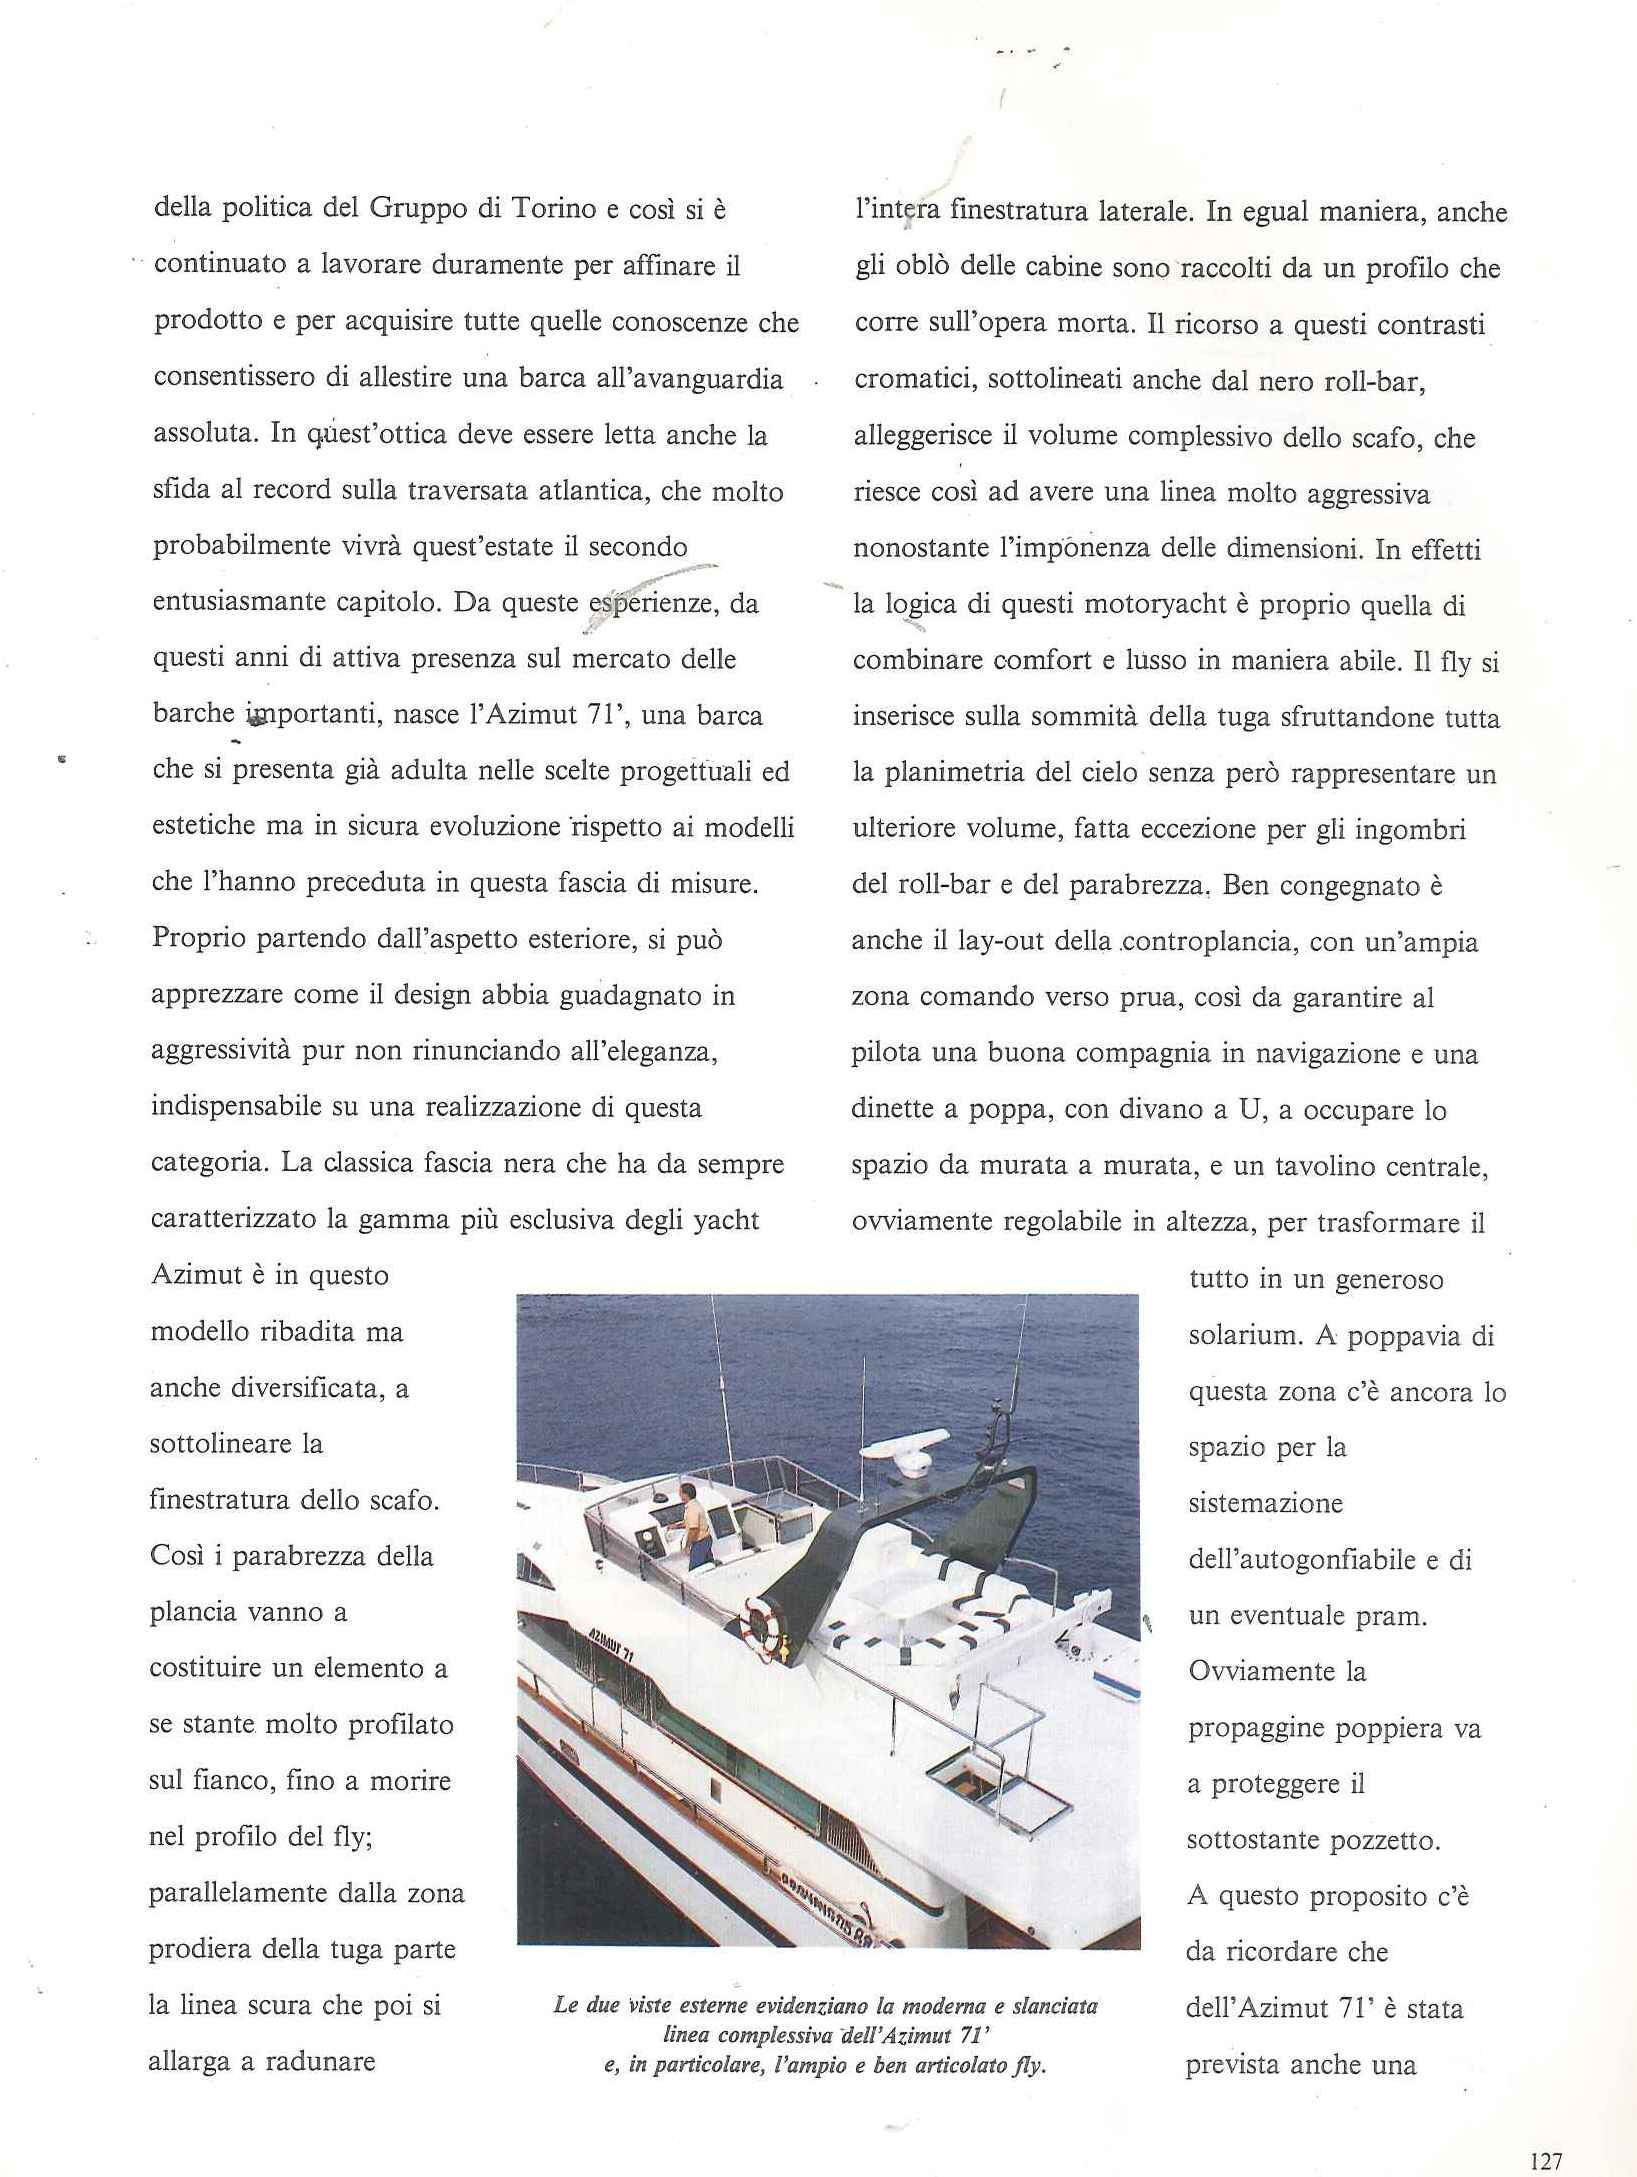 1989 04 PRESS AZIMUT 71 UOMO MARE 129 (02).jpg